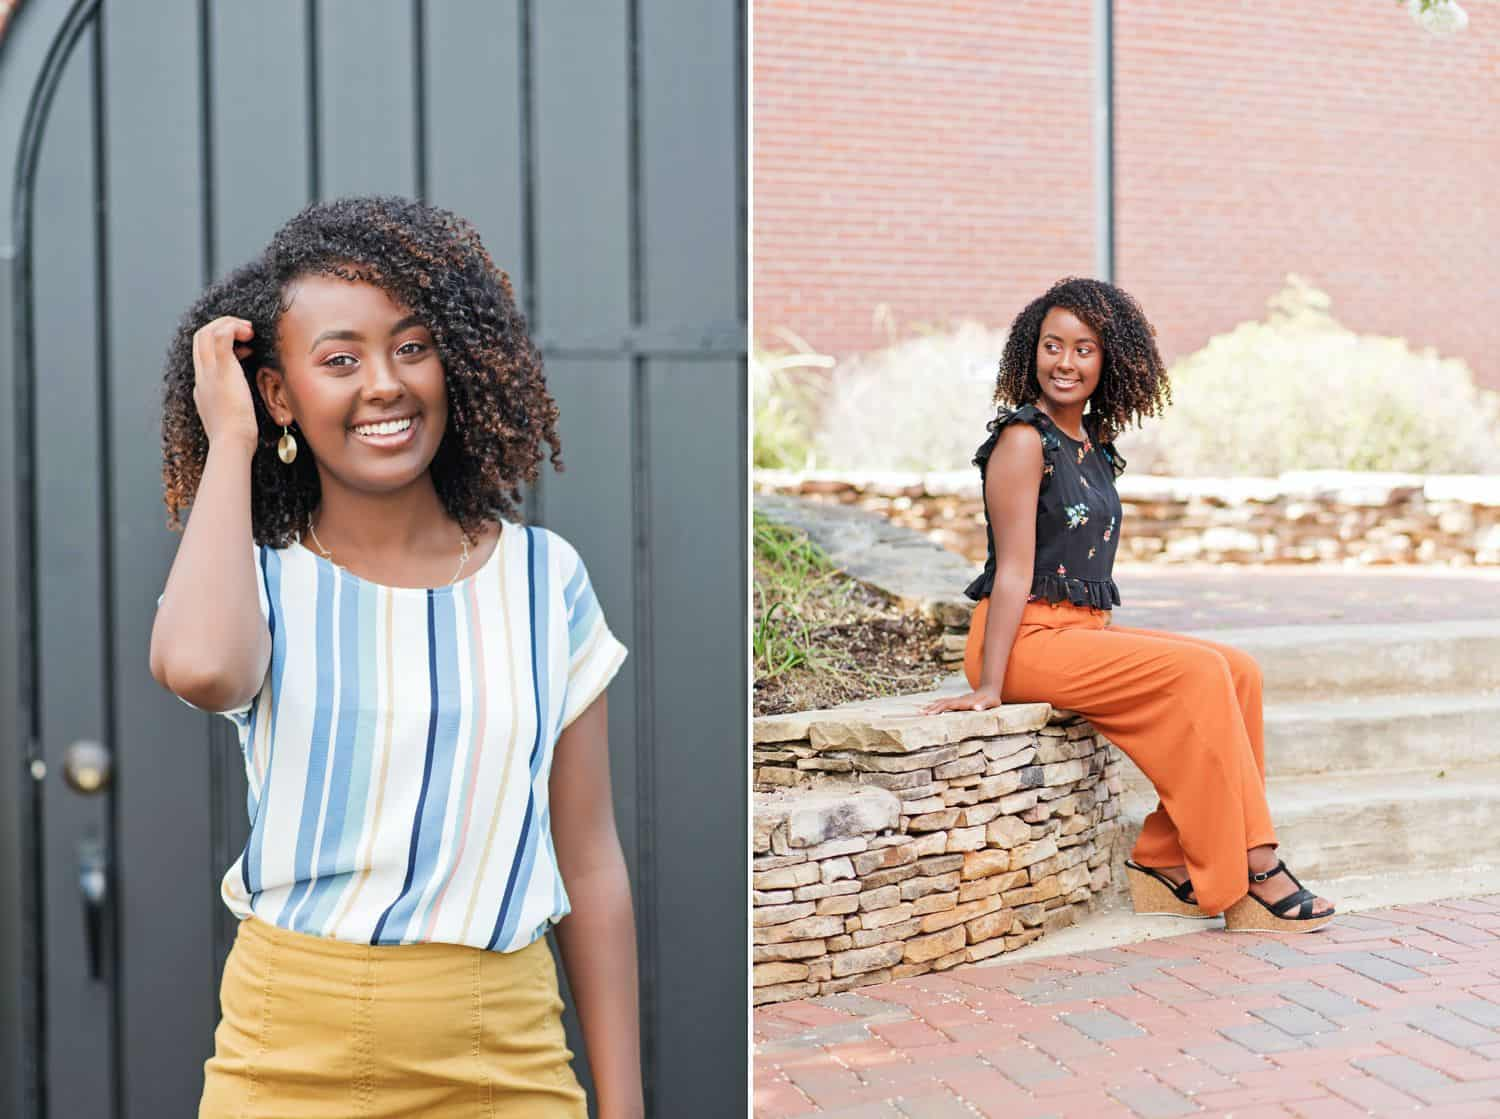 A high school senior with curly hair poses in brightly colored outfits against simple backdrops